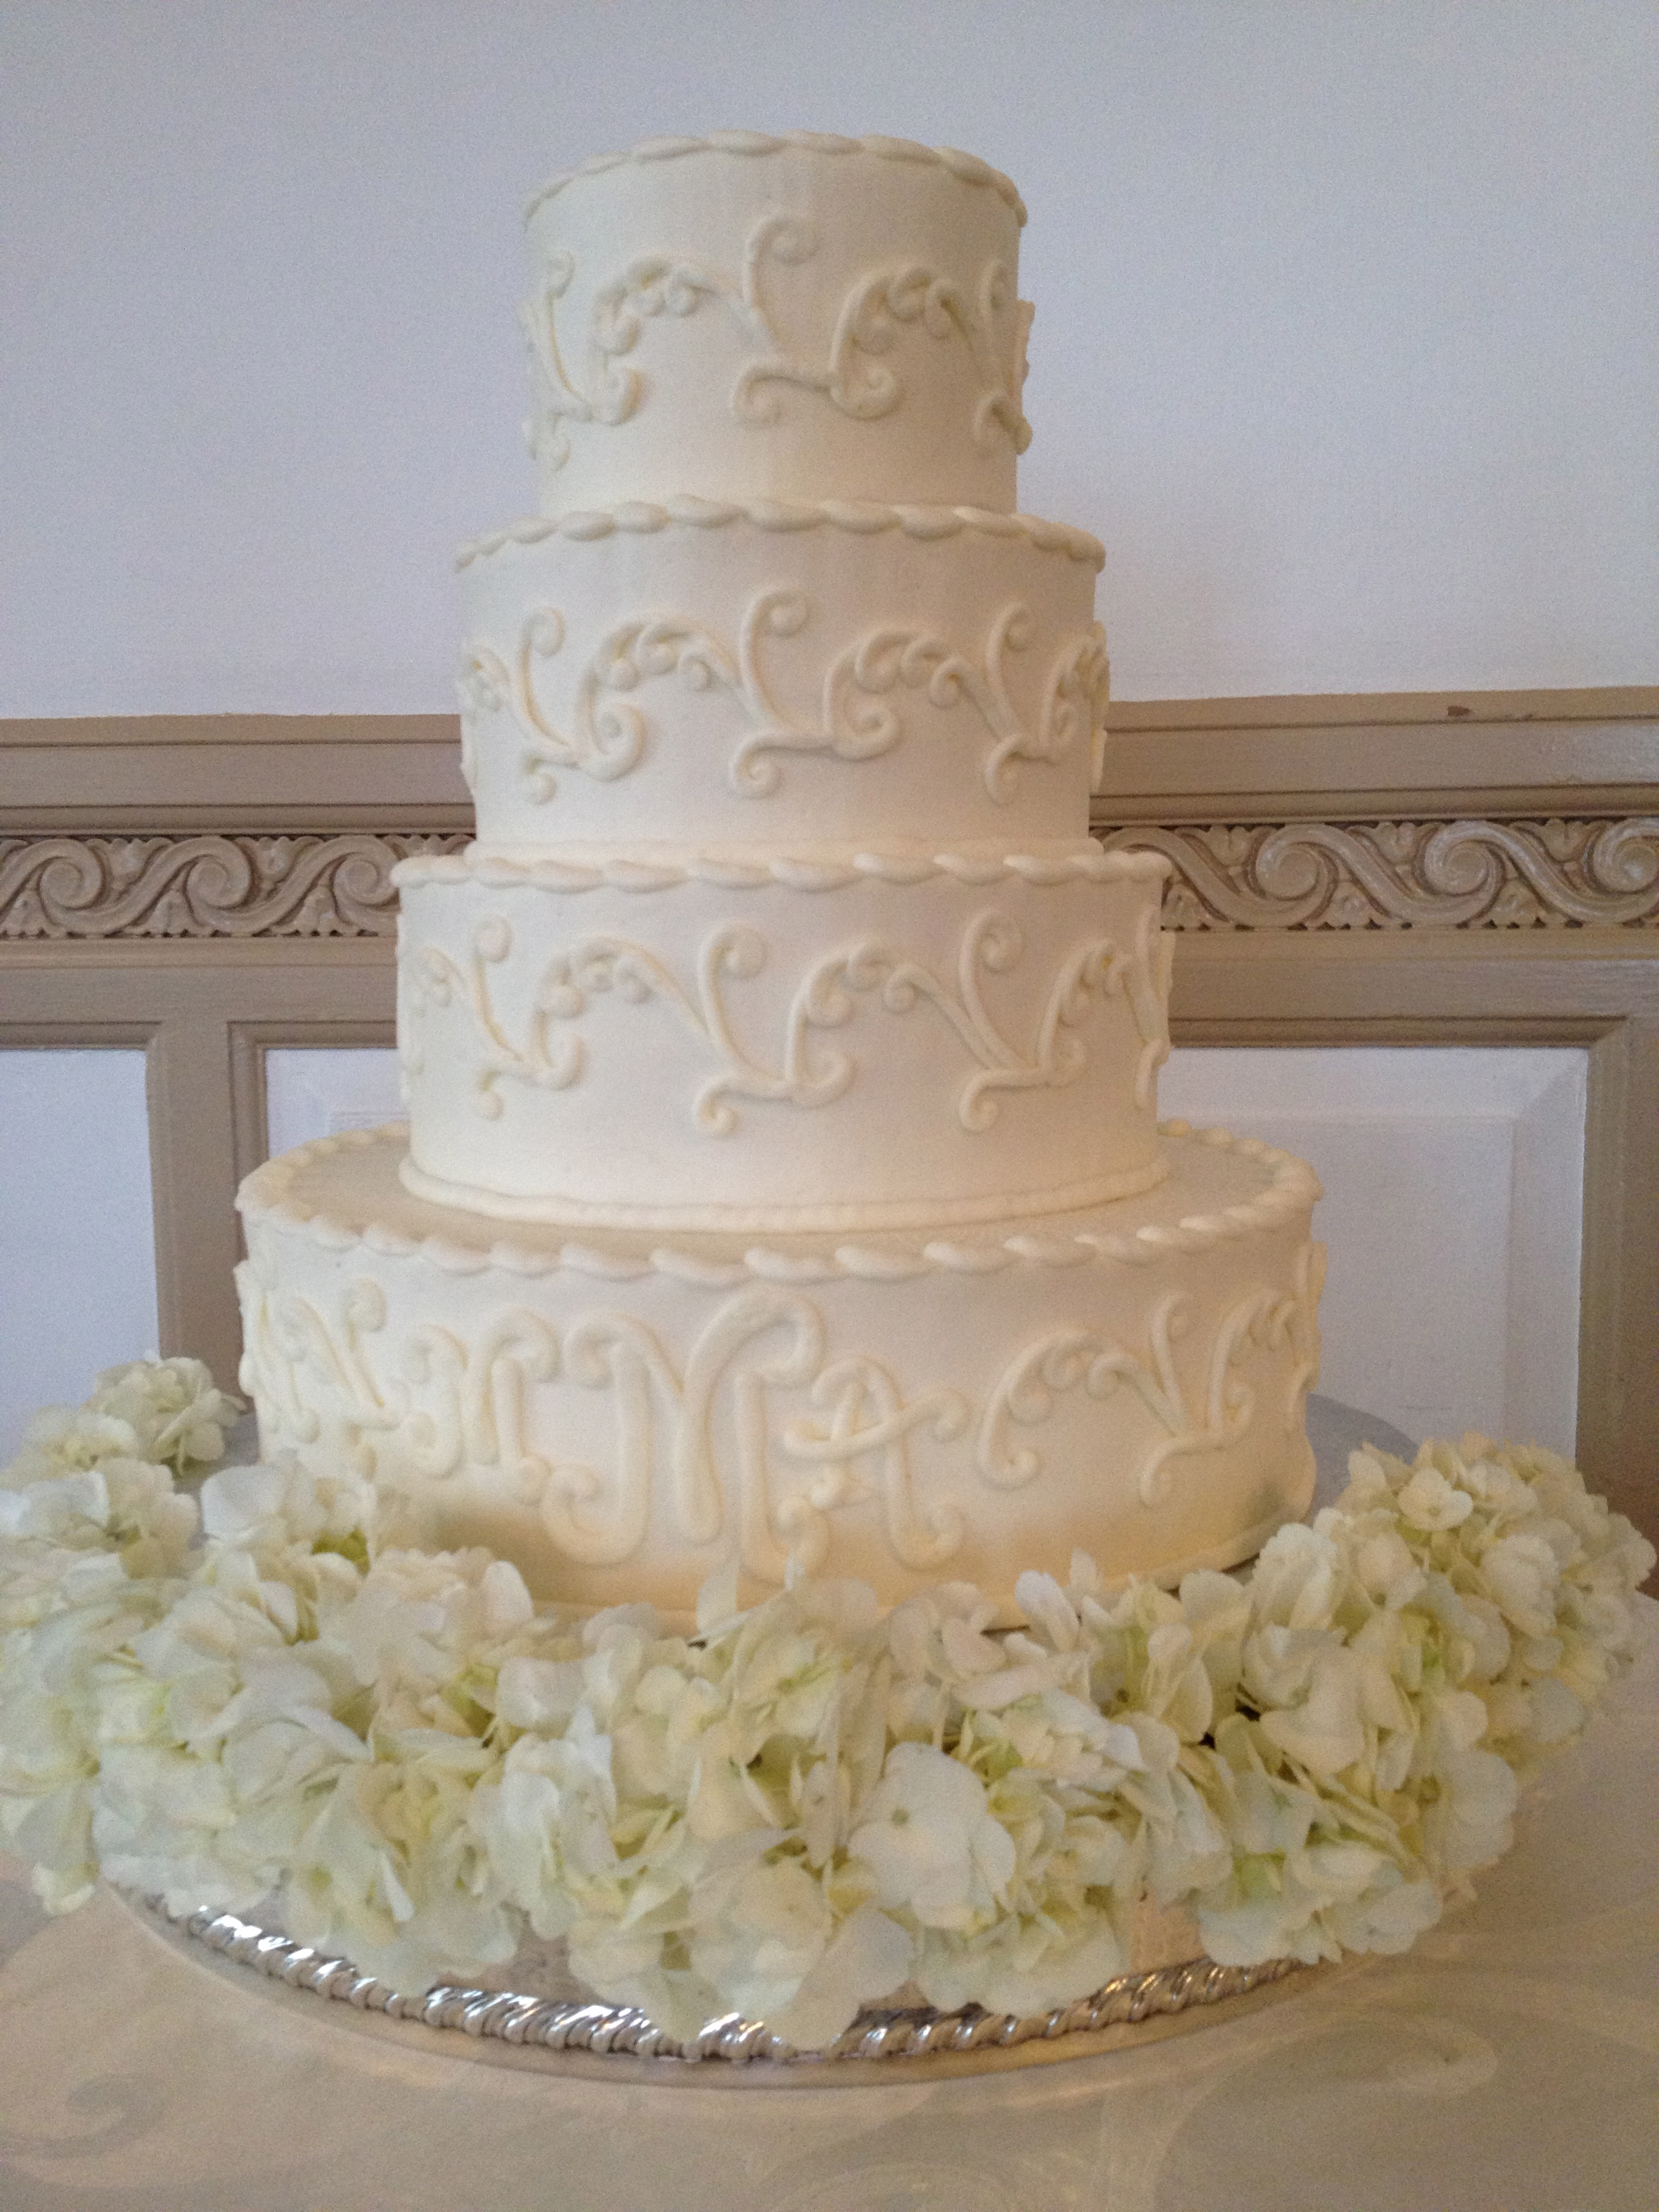 White hydrangea skirts the tiered cake